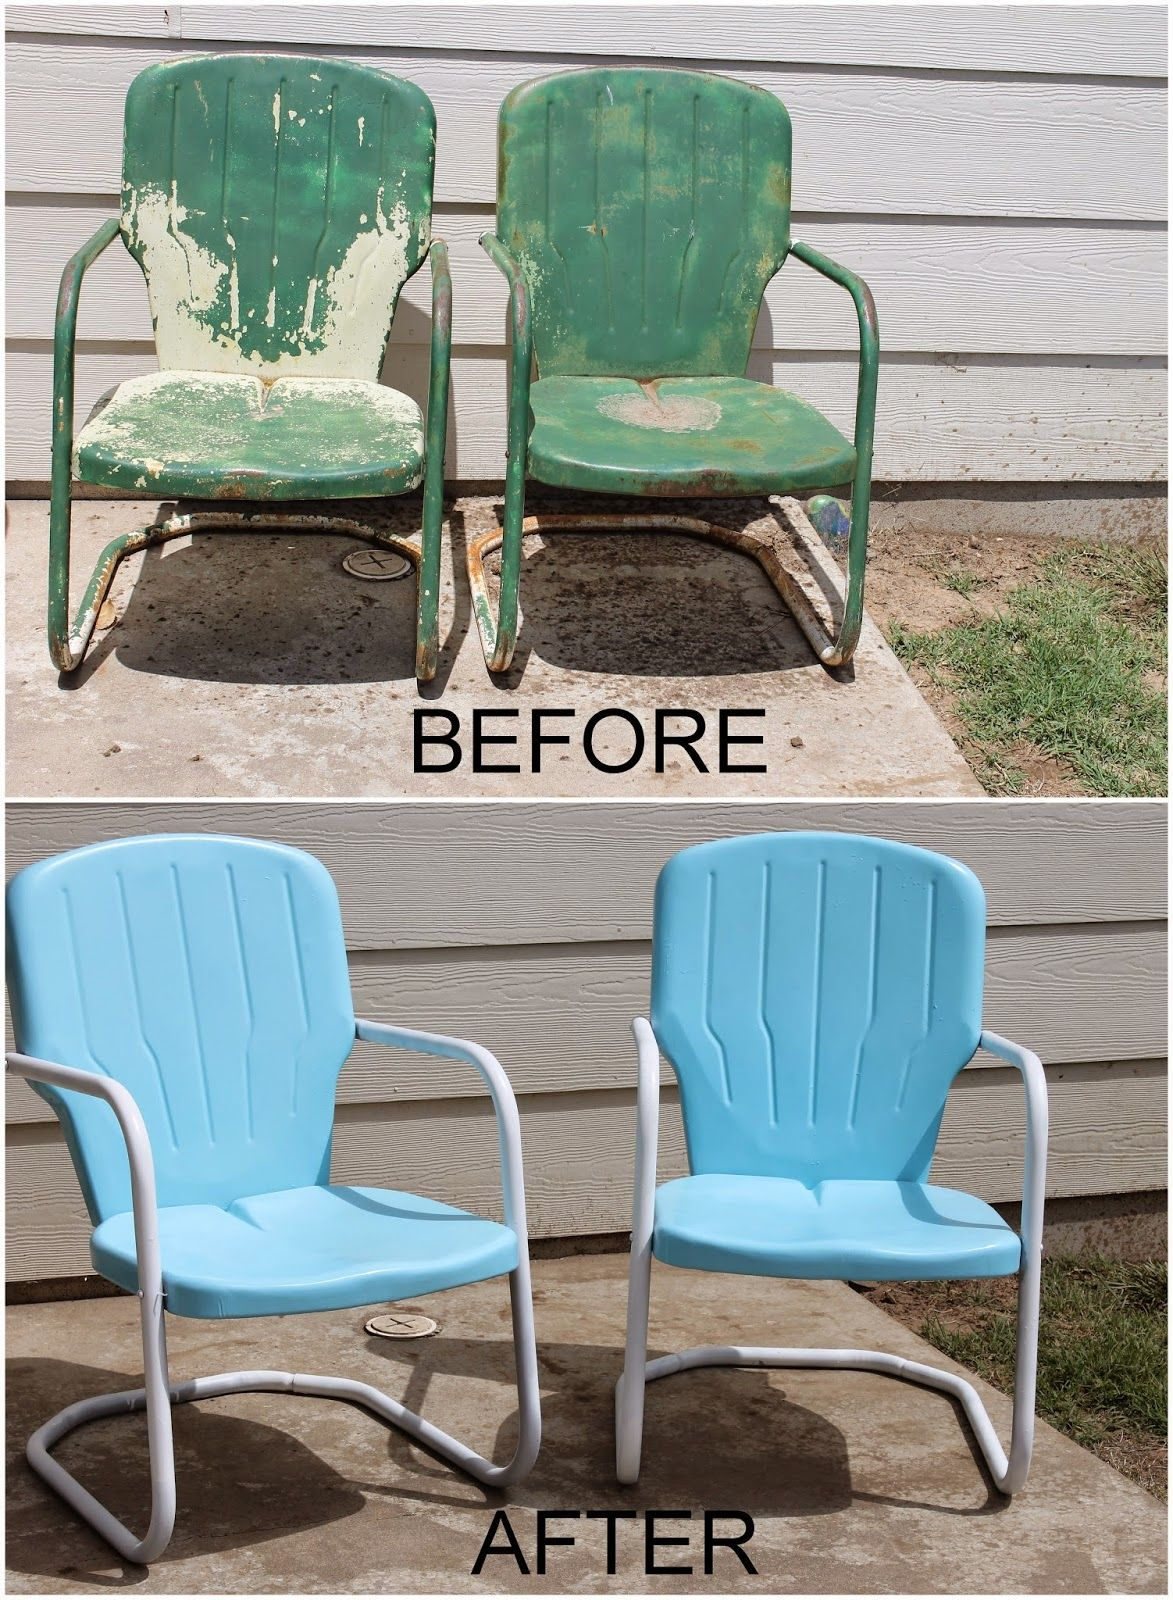 repaint old metal patio chairs diy paint outdoor metal motel chairs rh pinterest com refinishing metal patio chairs refinishing metal porch furniture